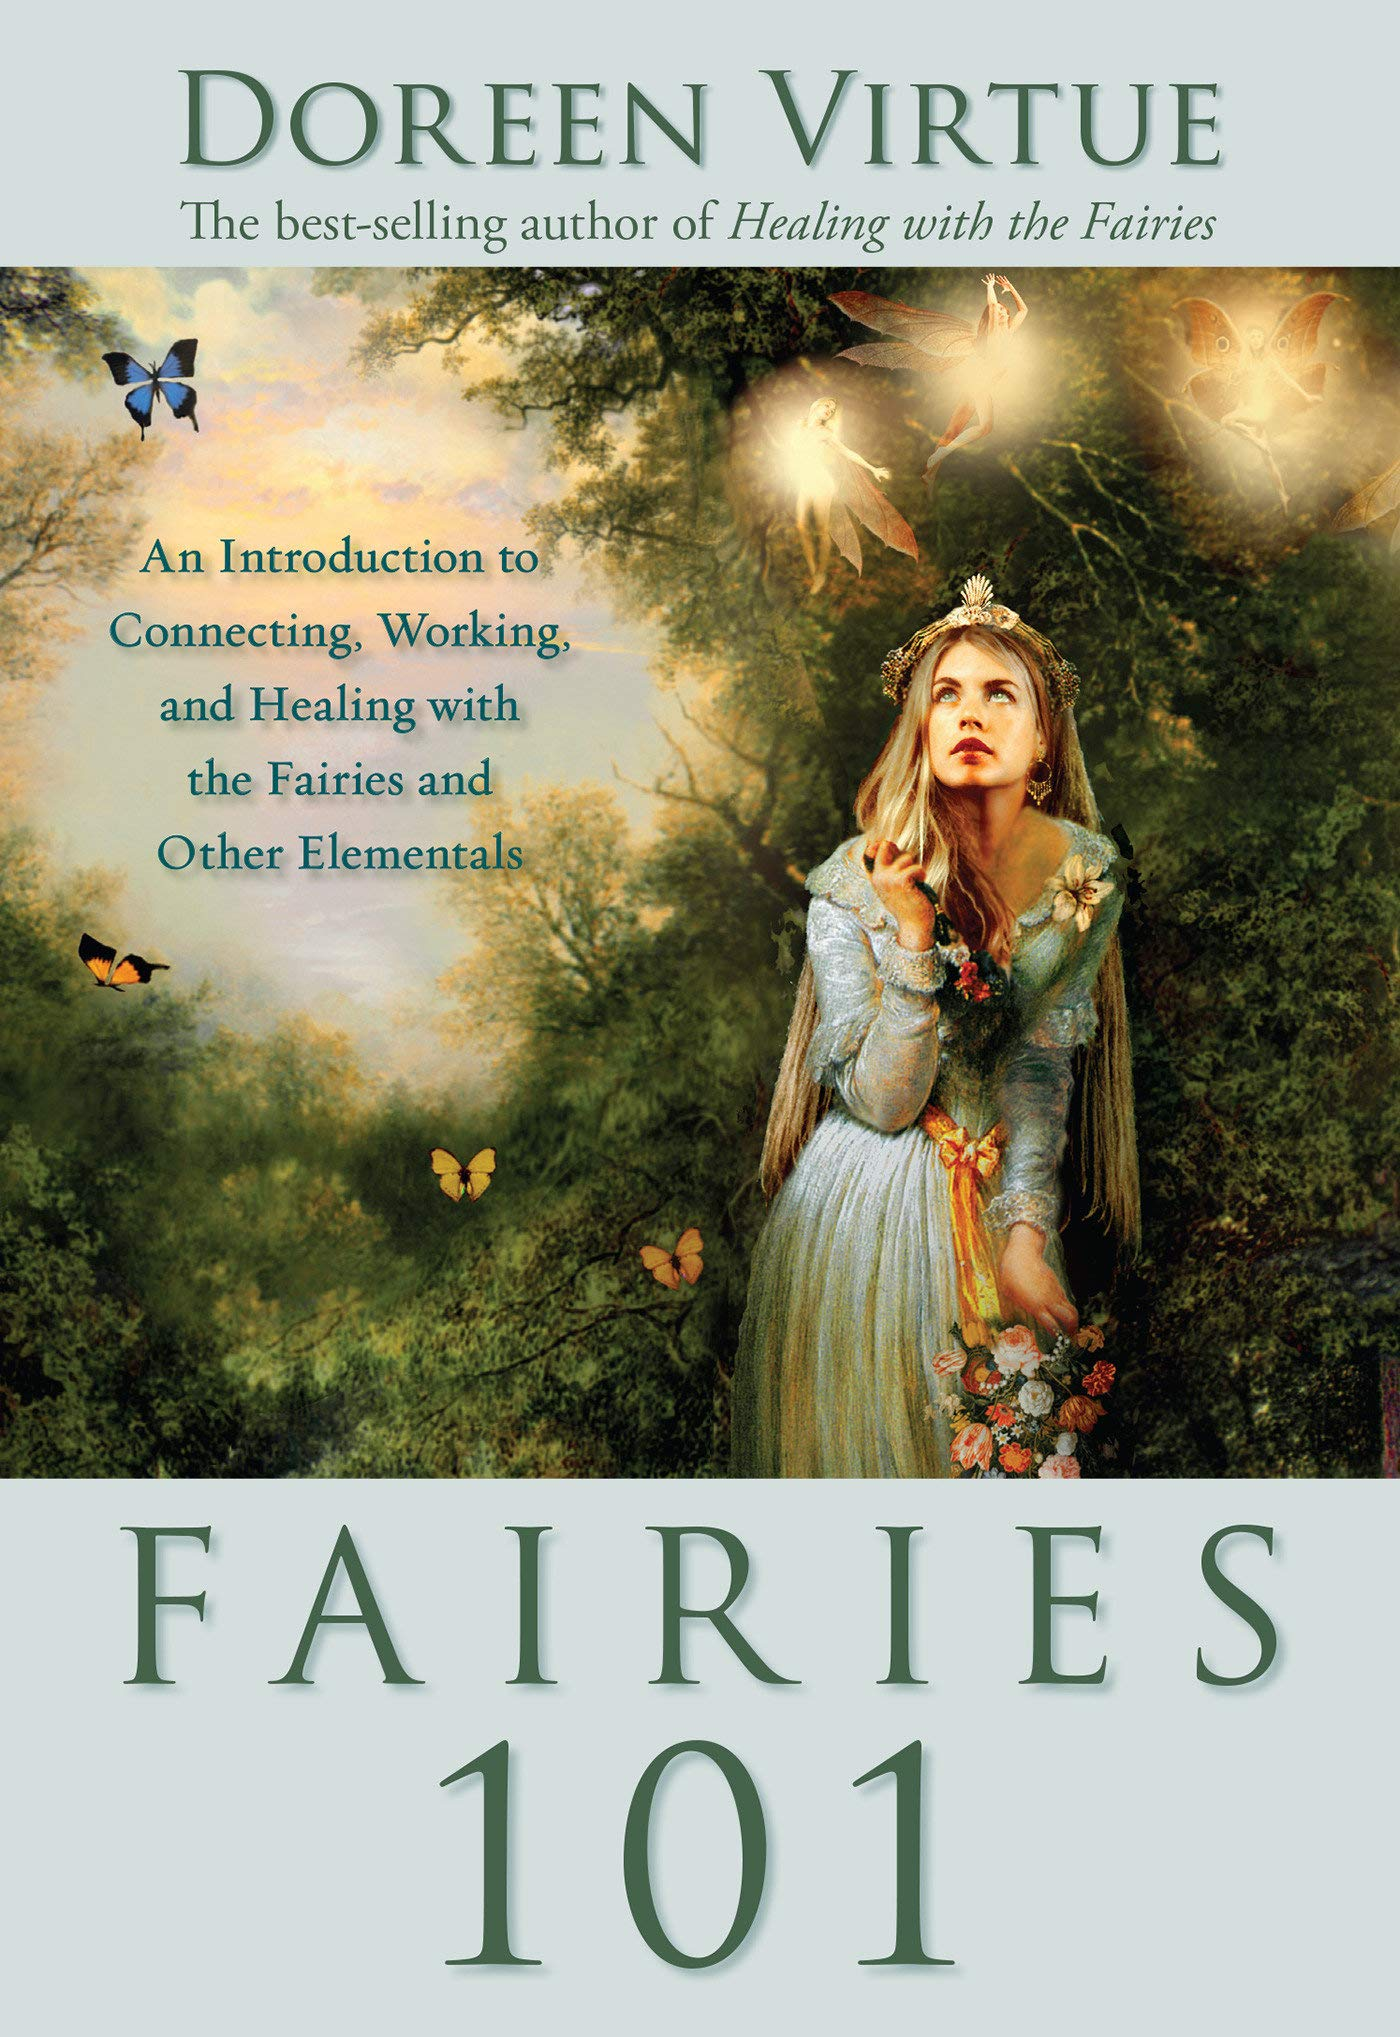 Fairies 101: An Inroduction to Connecting, Working, and Healing with the Fairies and Other Elementals PDF